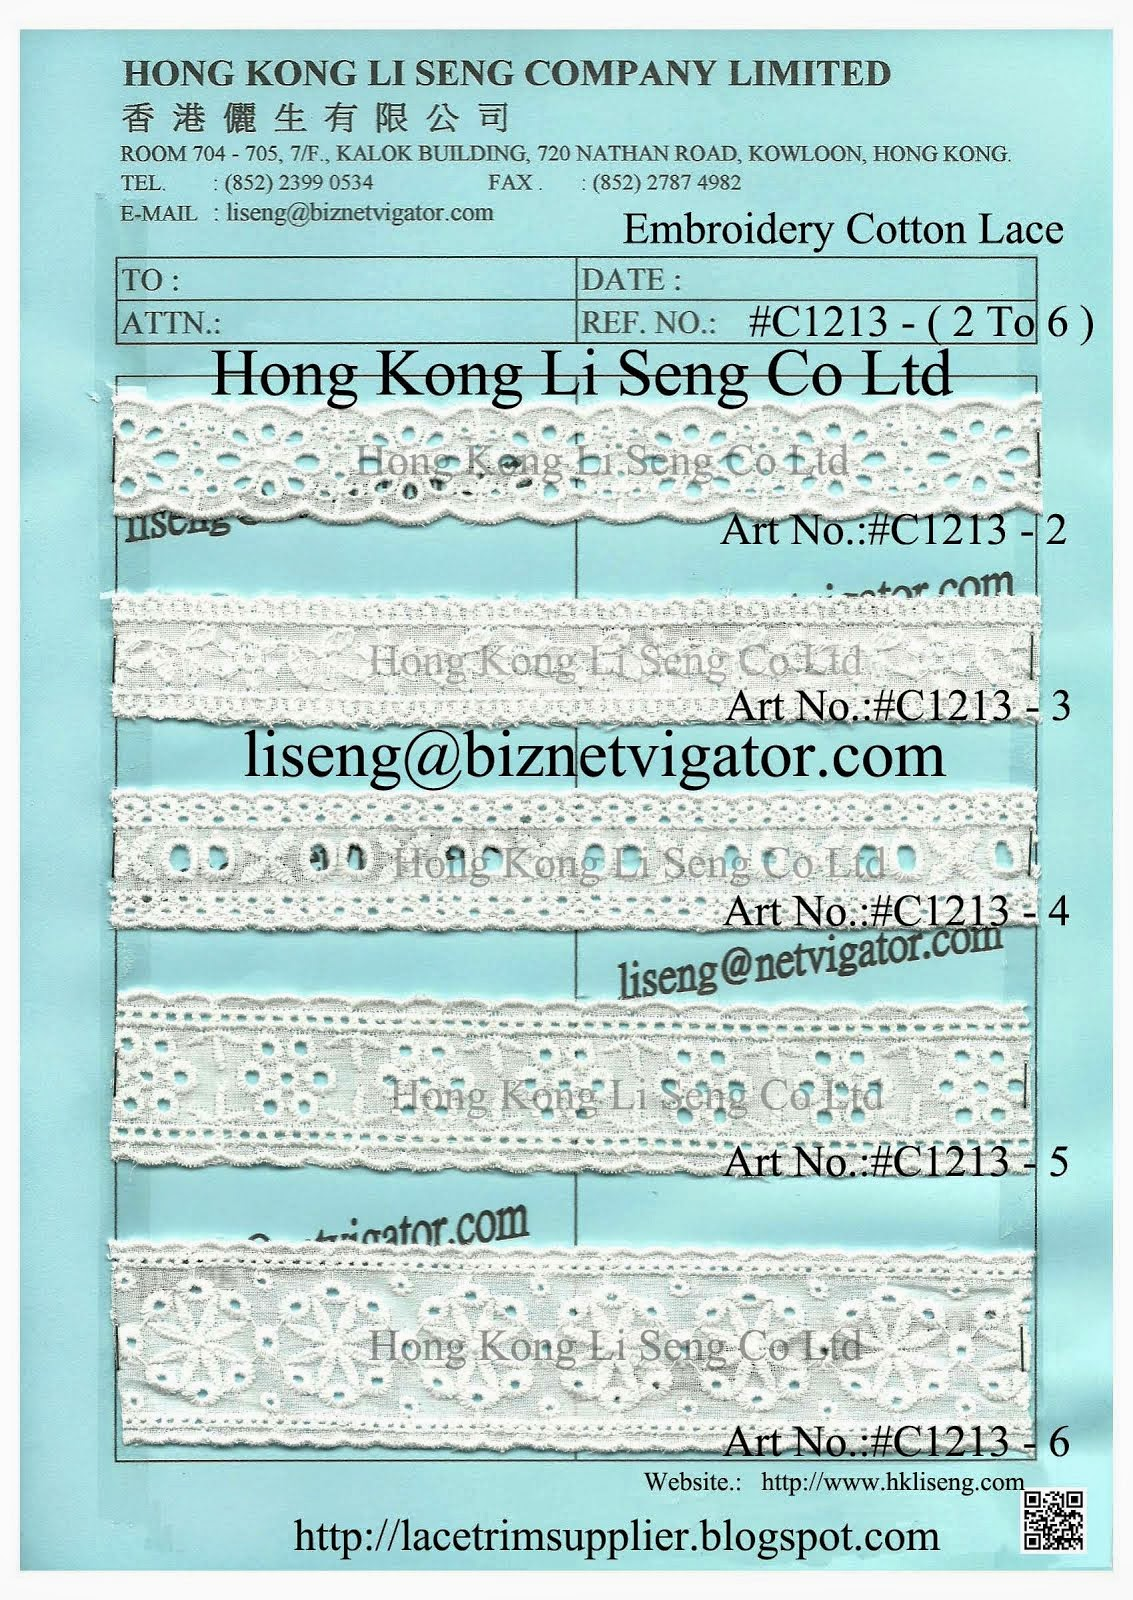 Apparel Trims Supplier and Manufacturer - Hong Kong Li Seng Co Ltd